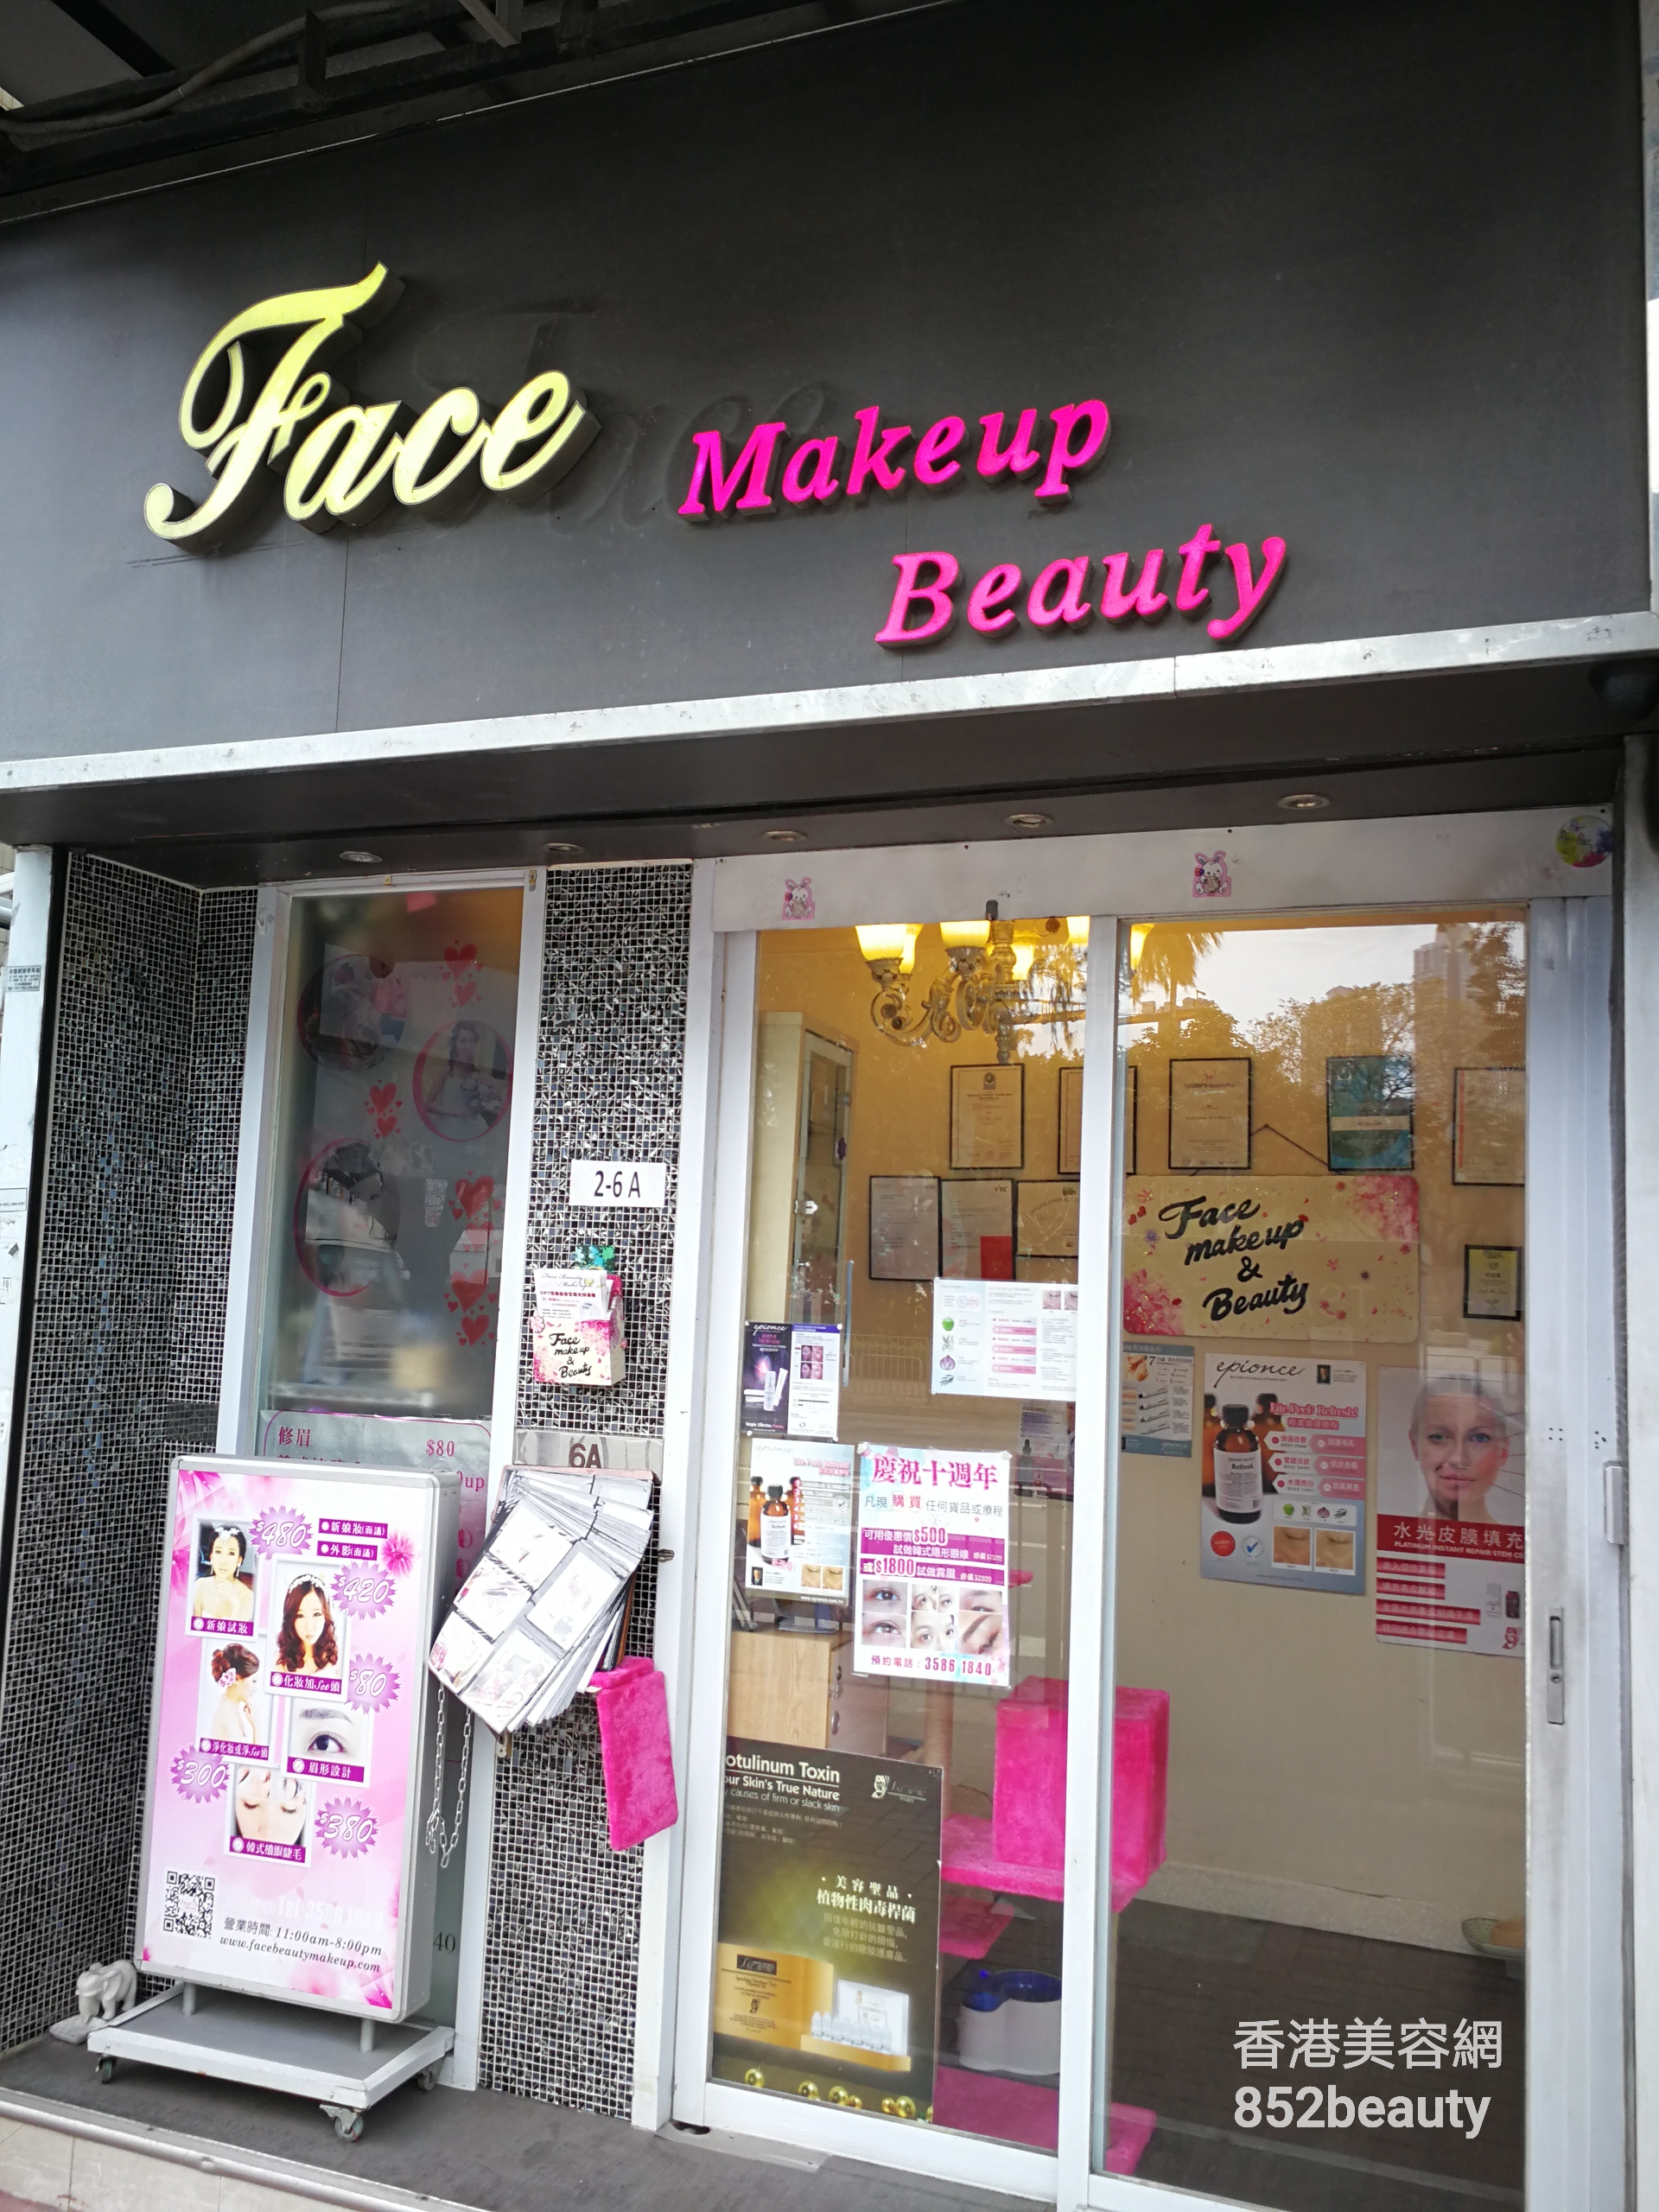 美容院: Face Makeup Beauty